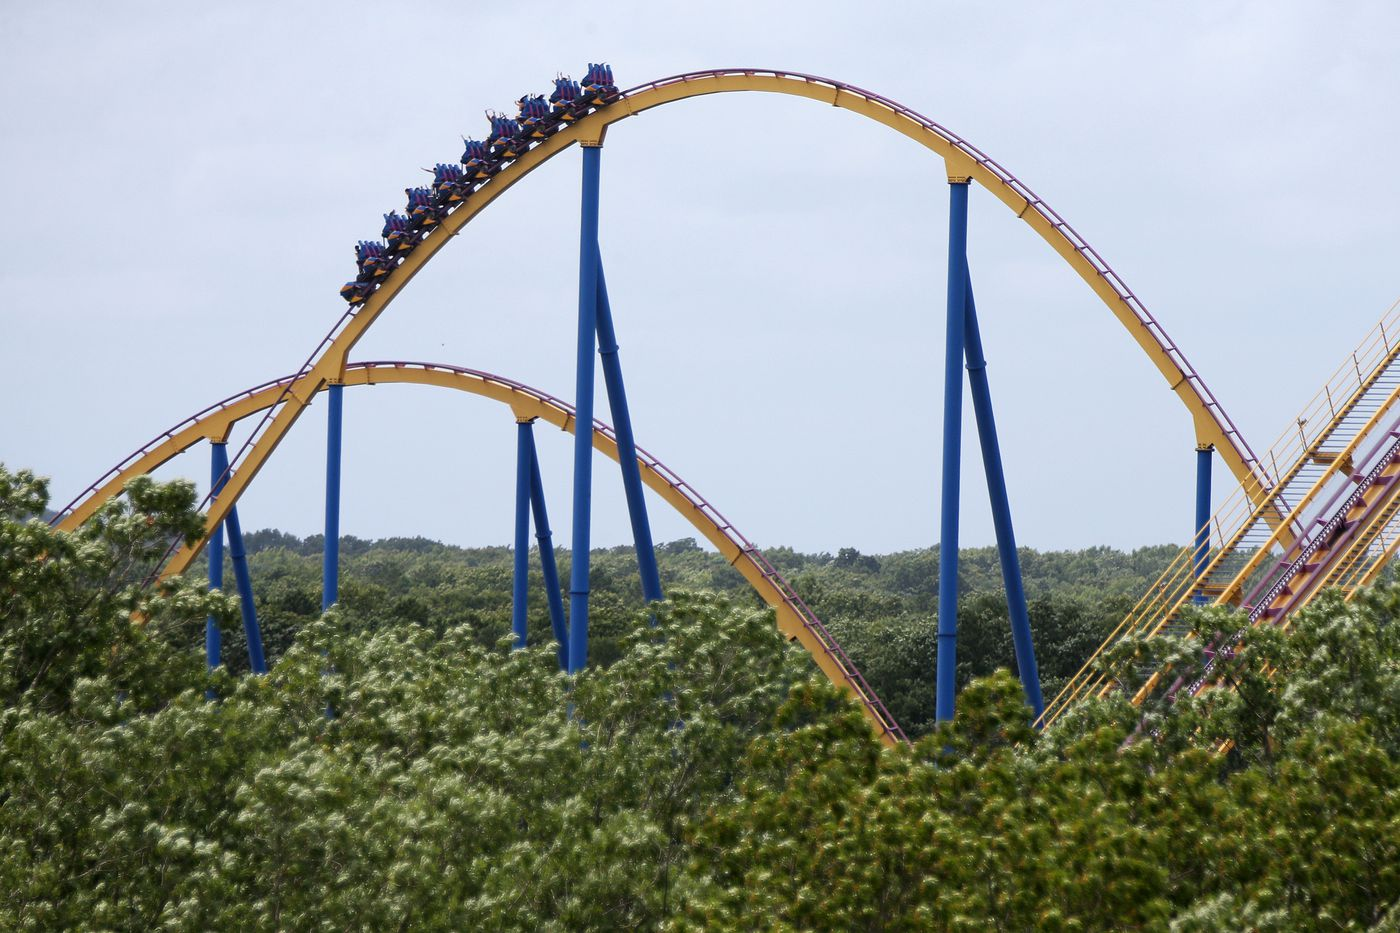 The Nitro roller-coaster at Great Adventure.